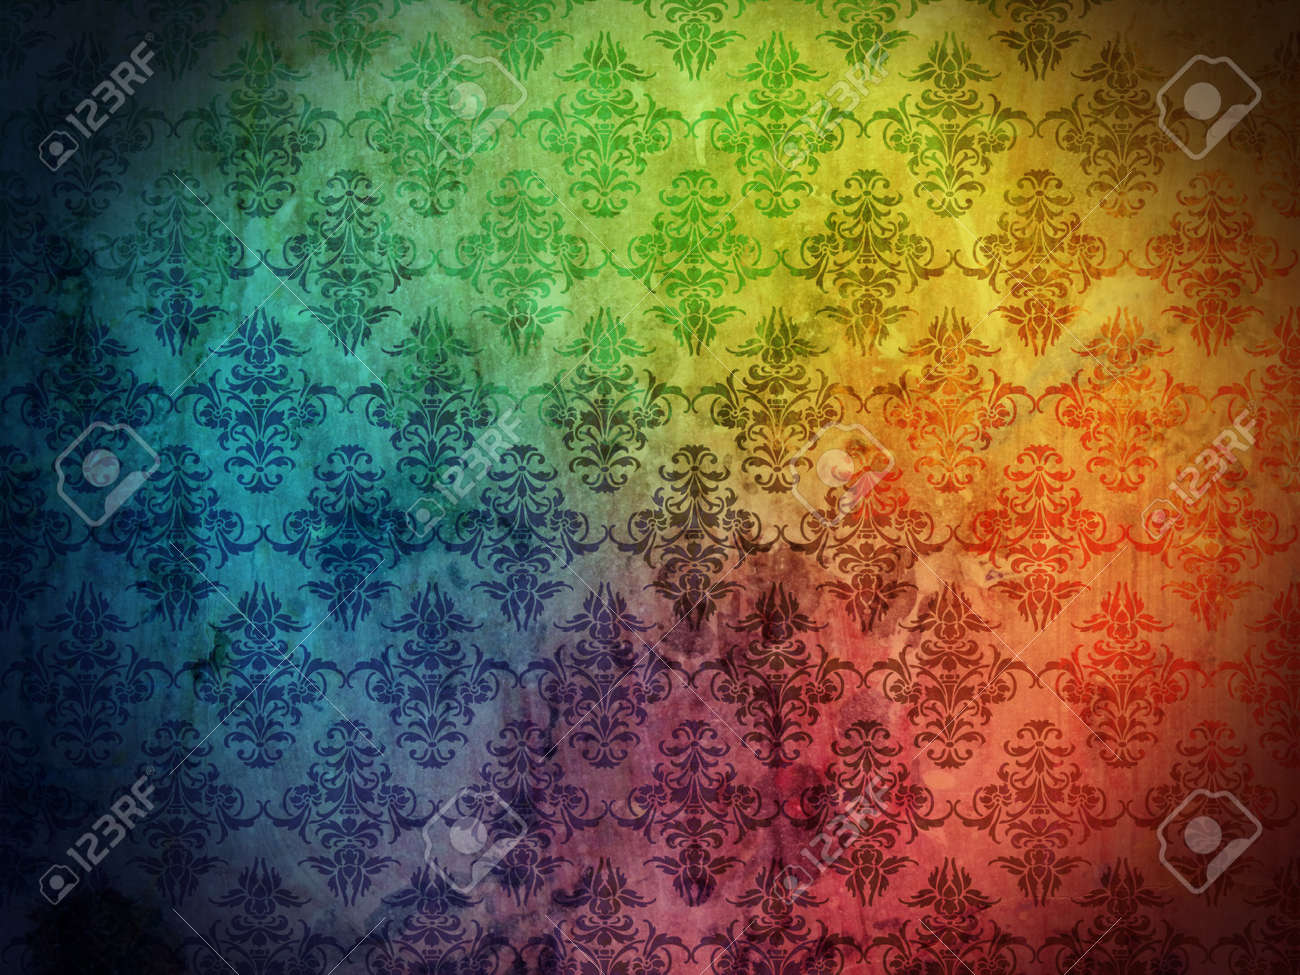 Damask wallpaper or background with grunge and floral ornaments Stock Photo - 9234272